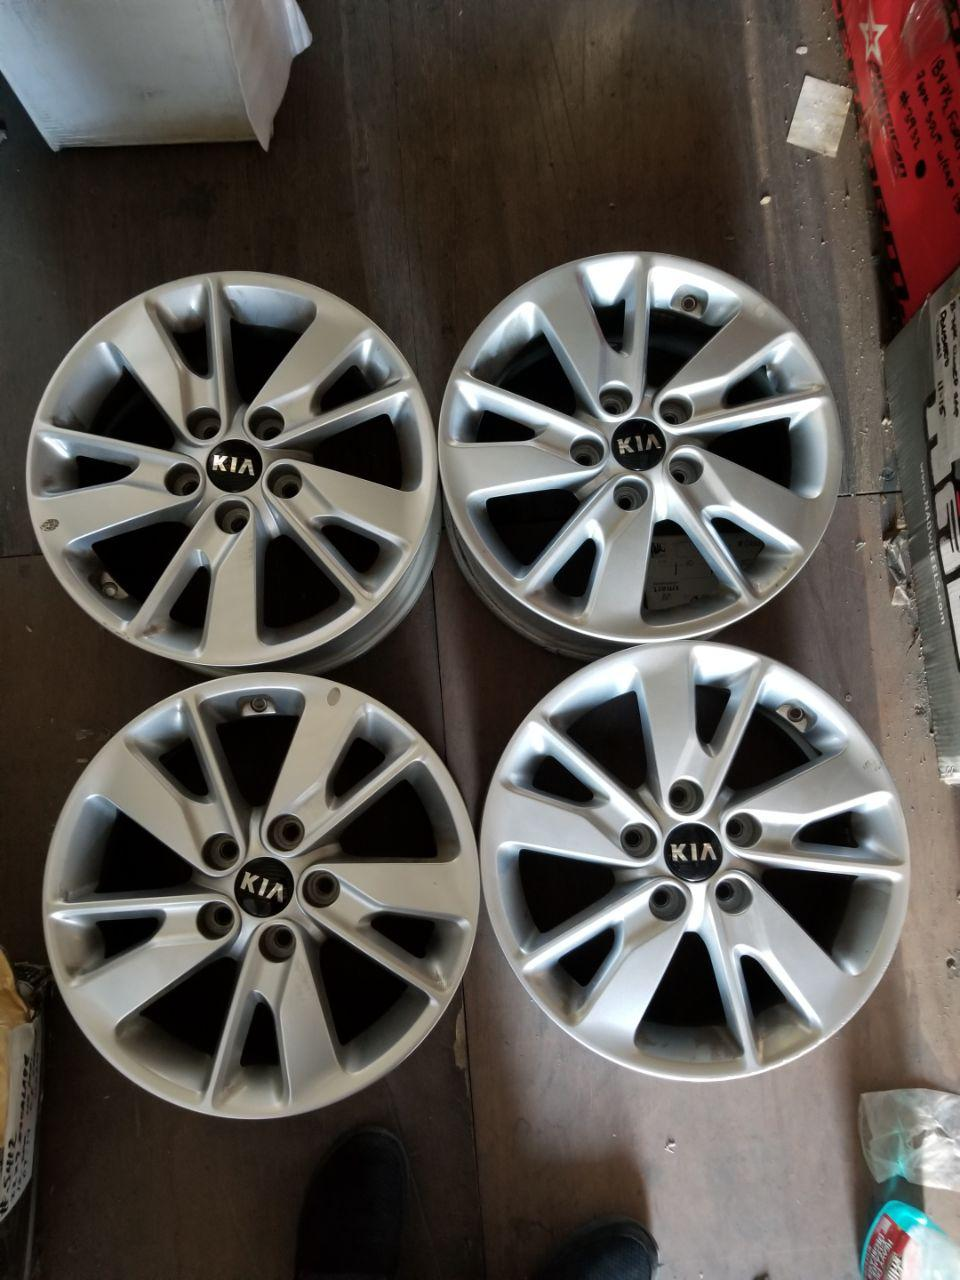 - OEM WHEELS - 2016-2017 KIA OPTIMA 16X6.5 ANGLED SPOKE Hollander #74729 /  USED